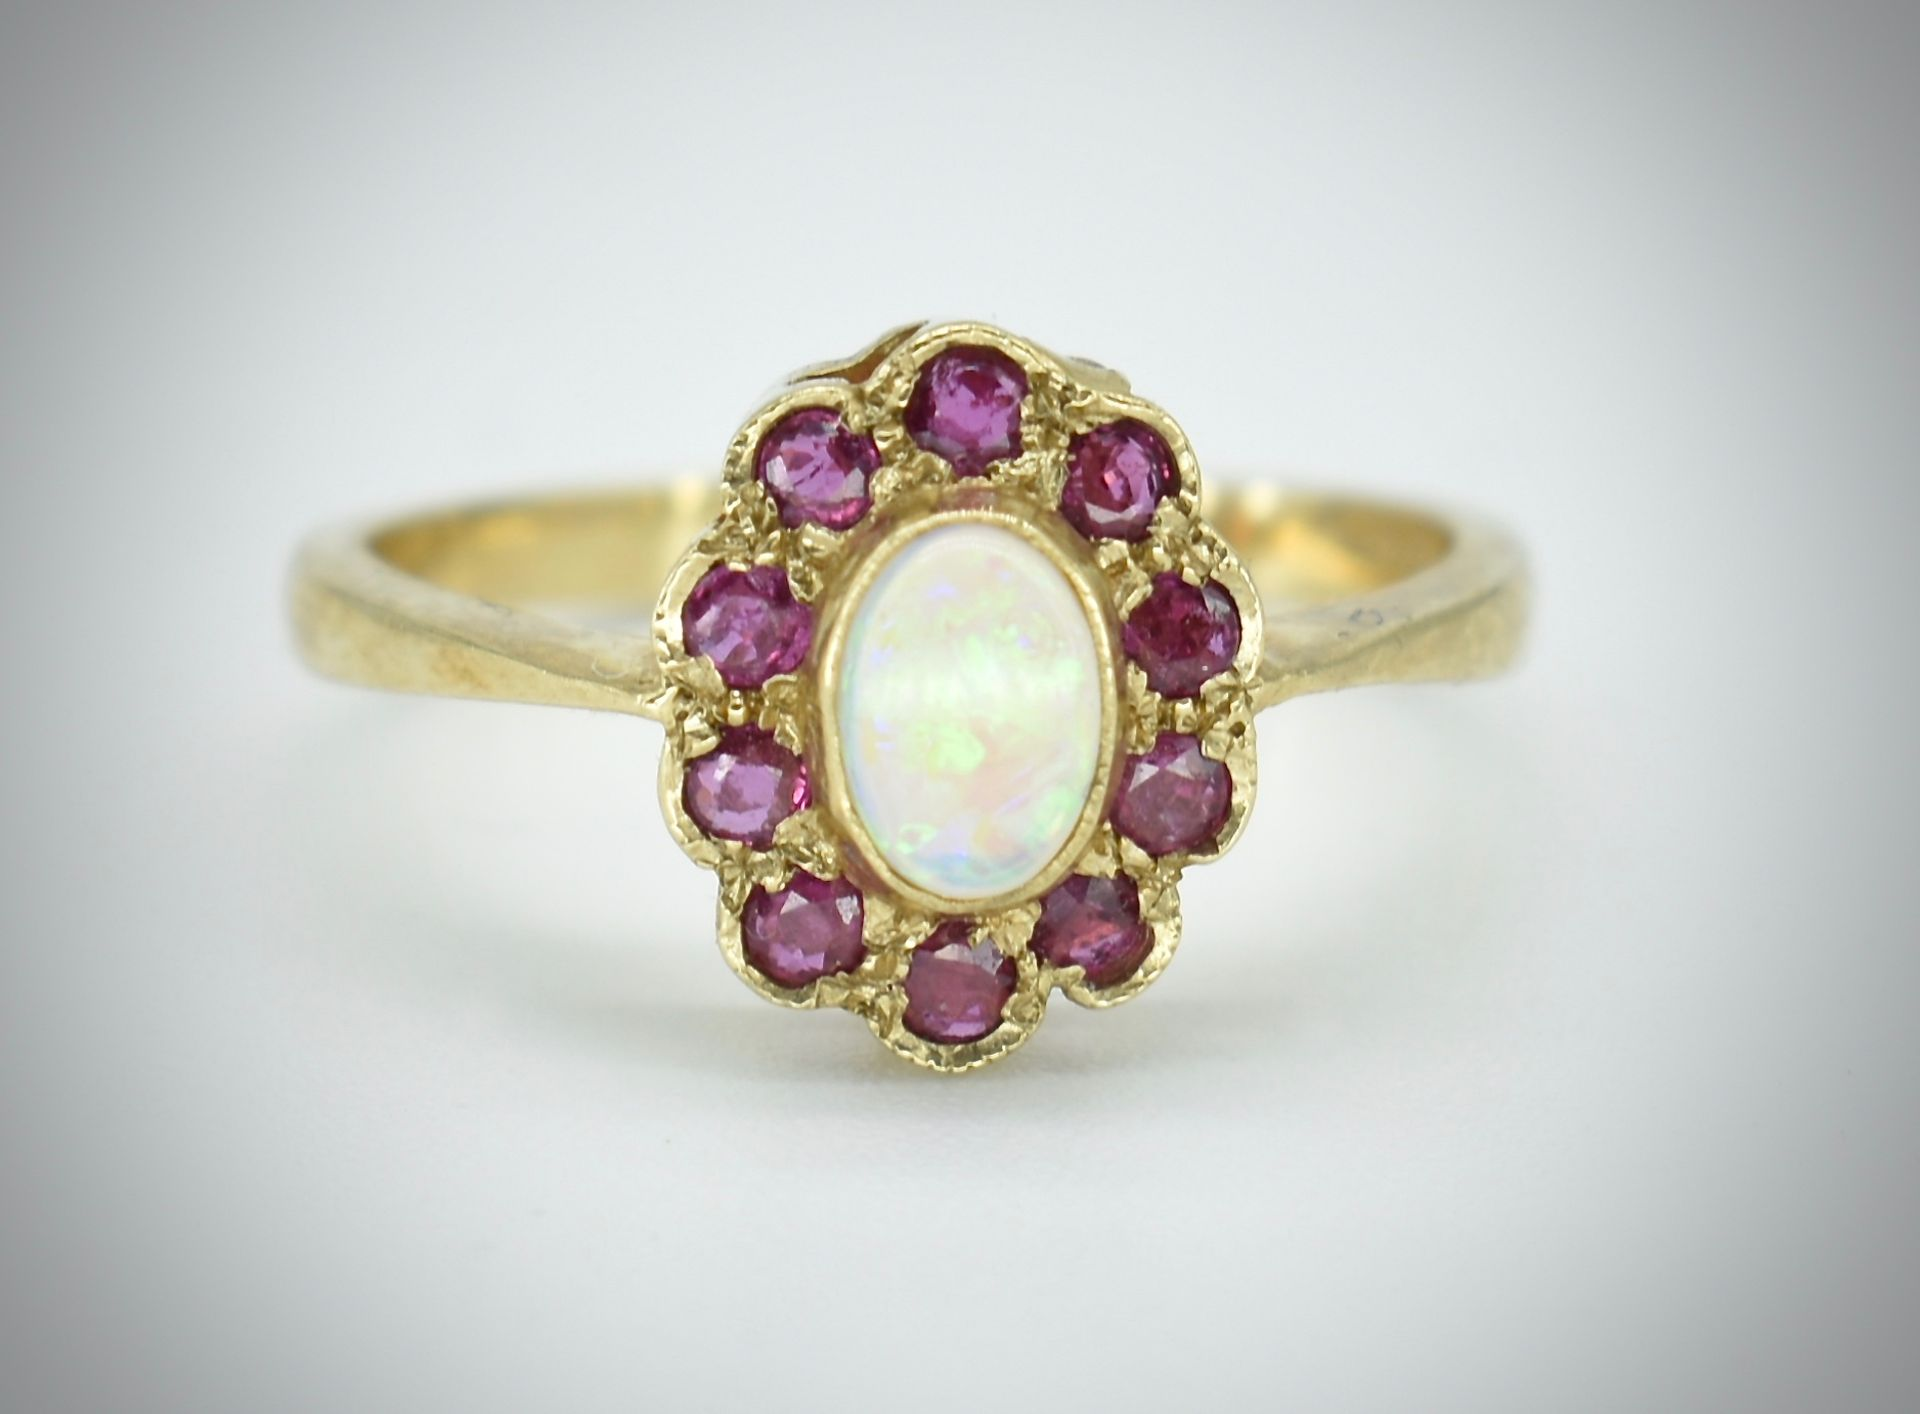 9ct Opal & Ruby Cluster Ring - Image 2 of 3